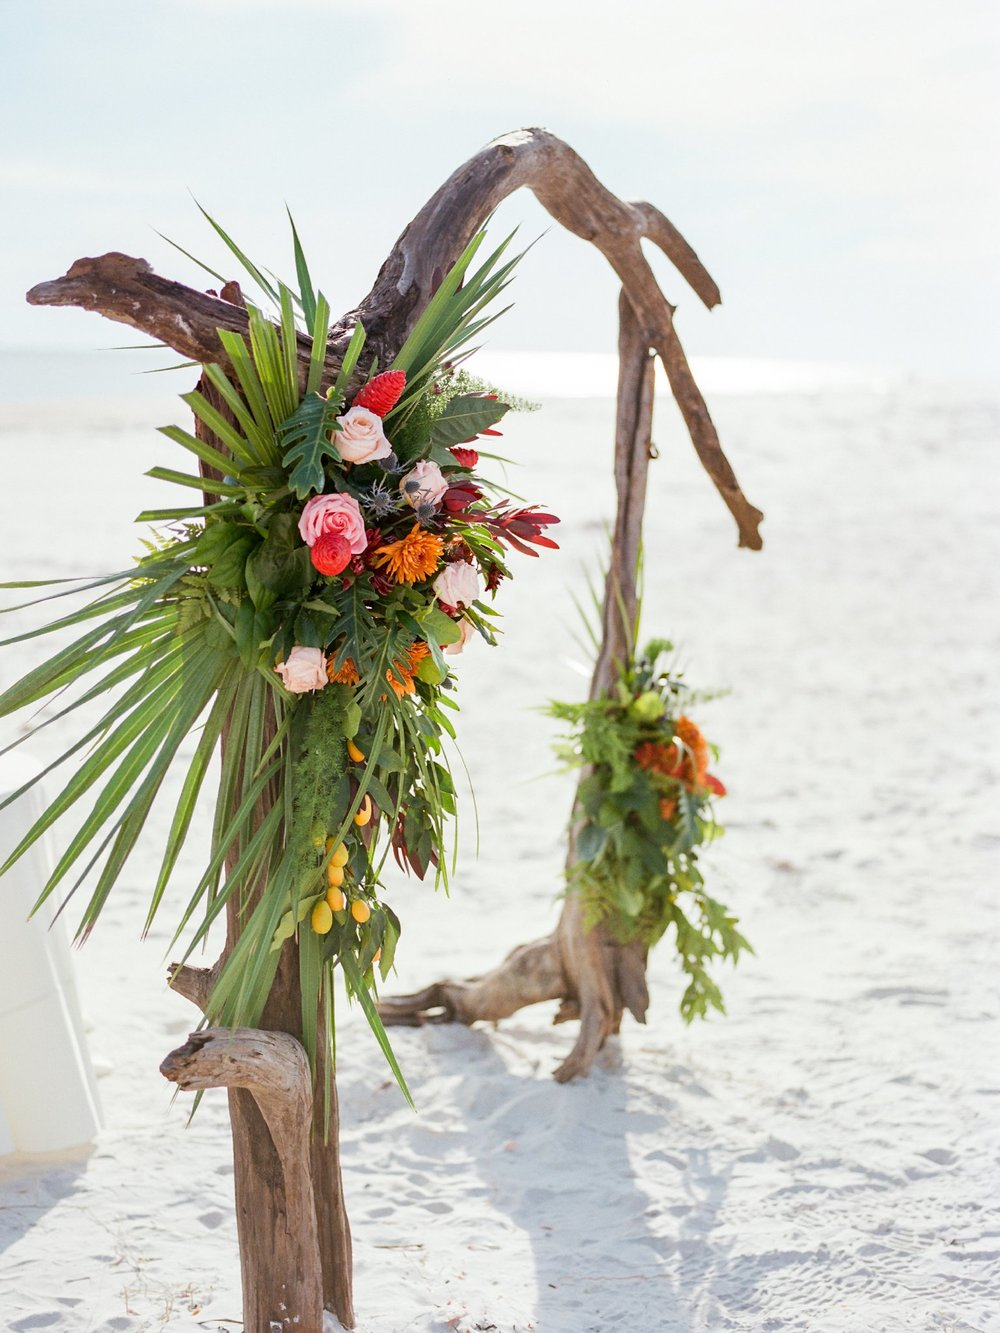 st george island wedding st george island photographer shannon griffin photography_0074.jpg